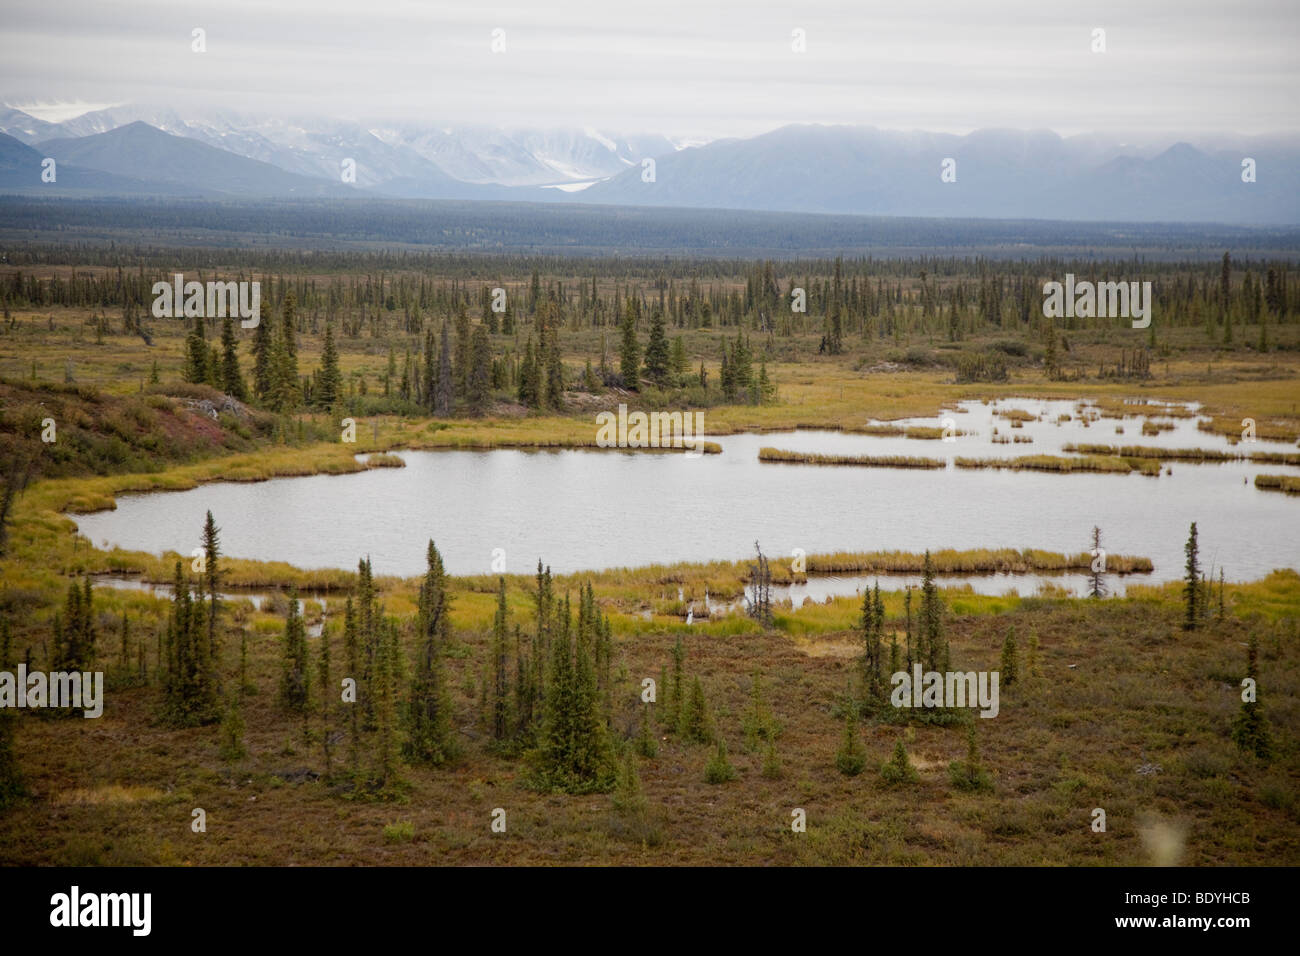 Boreal Forest in Alaska - Stock Image